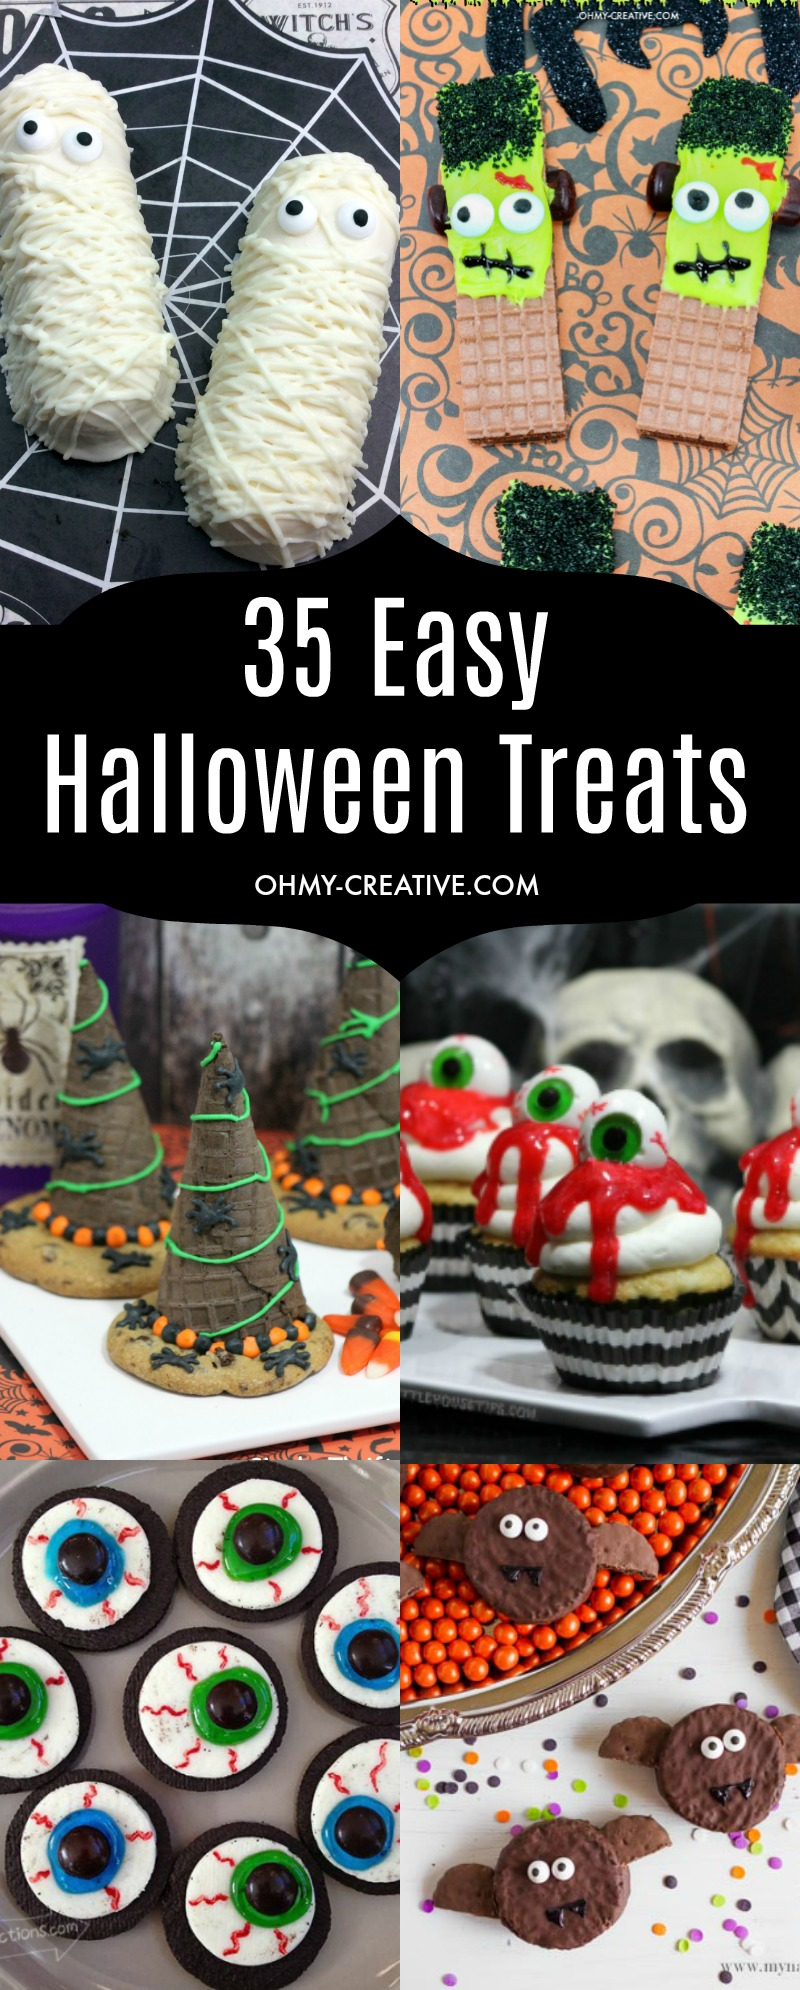 OHMY-CREATIVE.COM | Easy Treats | Treats for Kids | Easy Halloween Activities | Easy Halloween Treats | Fall Desserts | Halloween Desserts | Fall Treats for Kids | Easy Fall Recipes | Simple Fall Desserts |